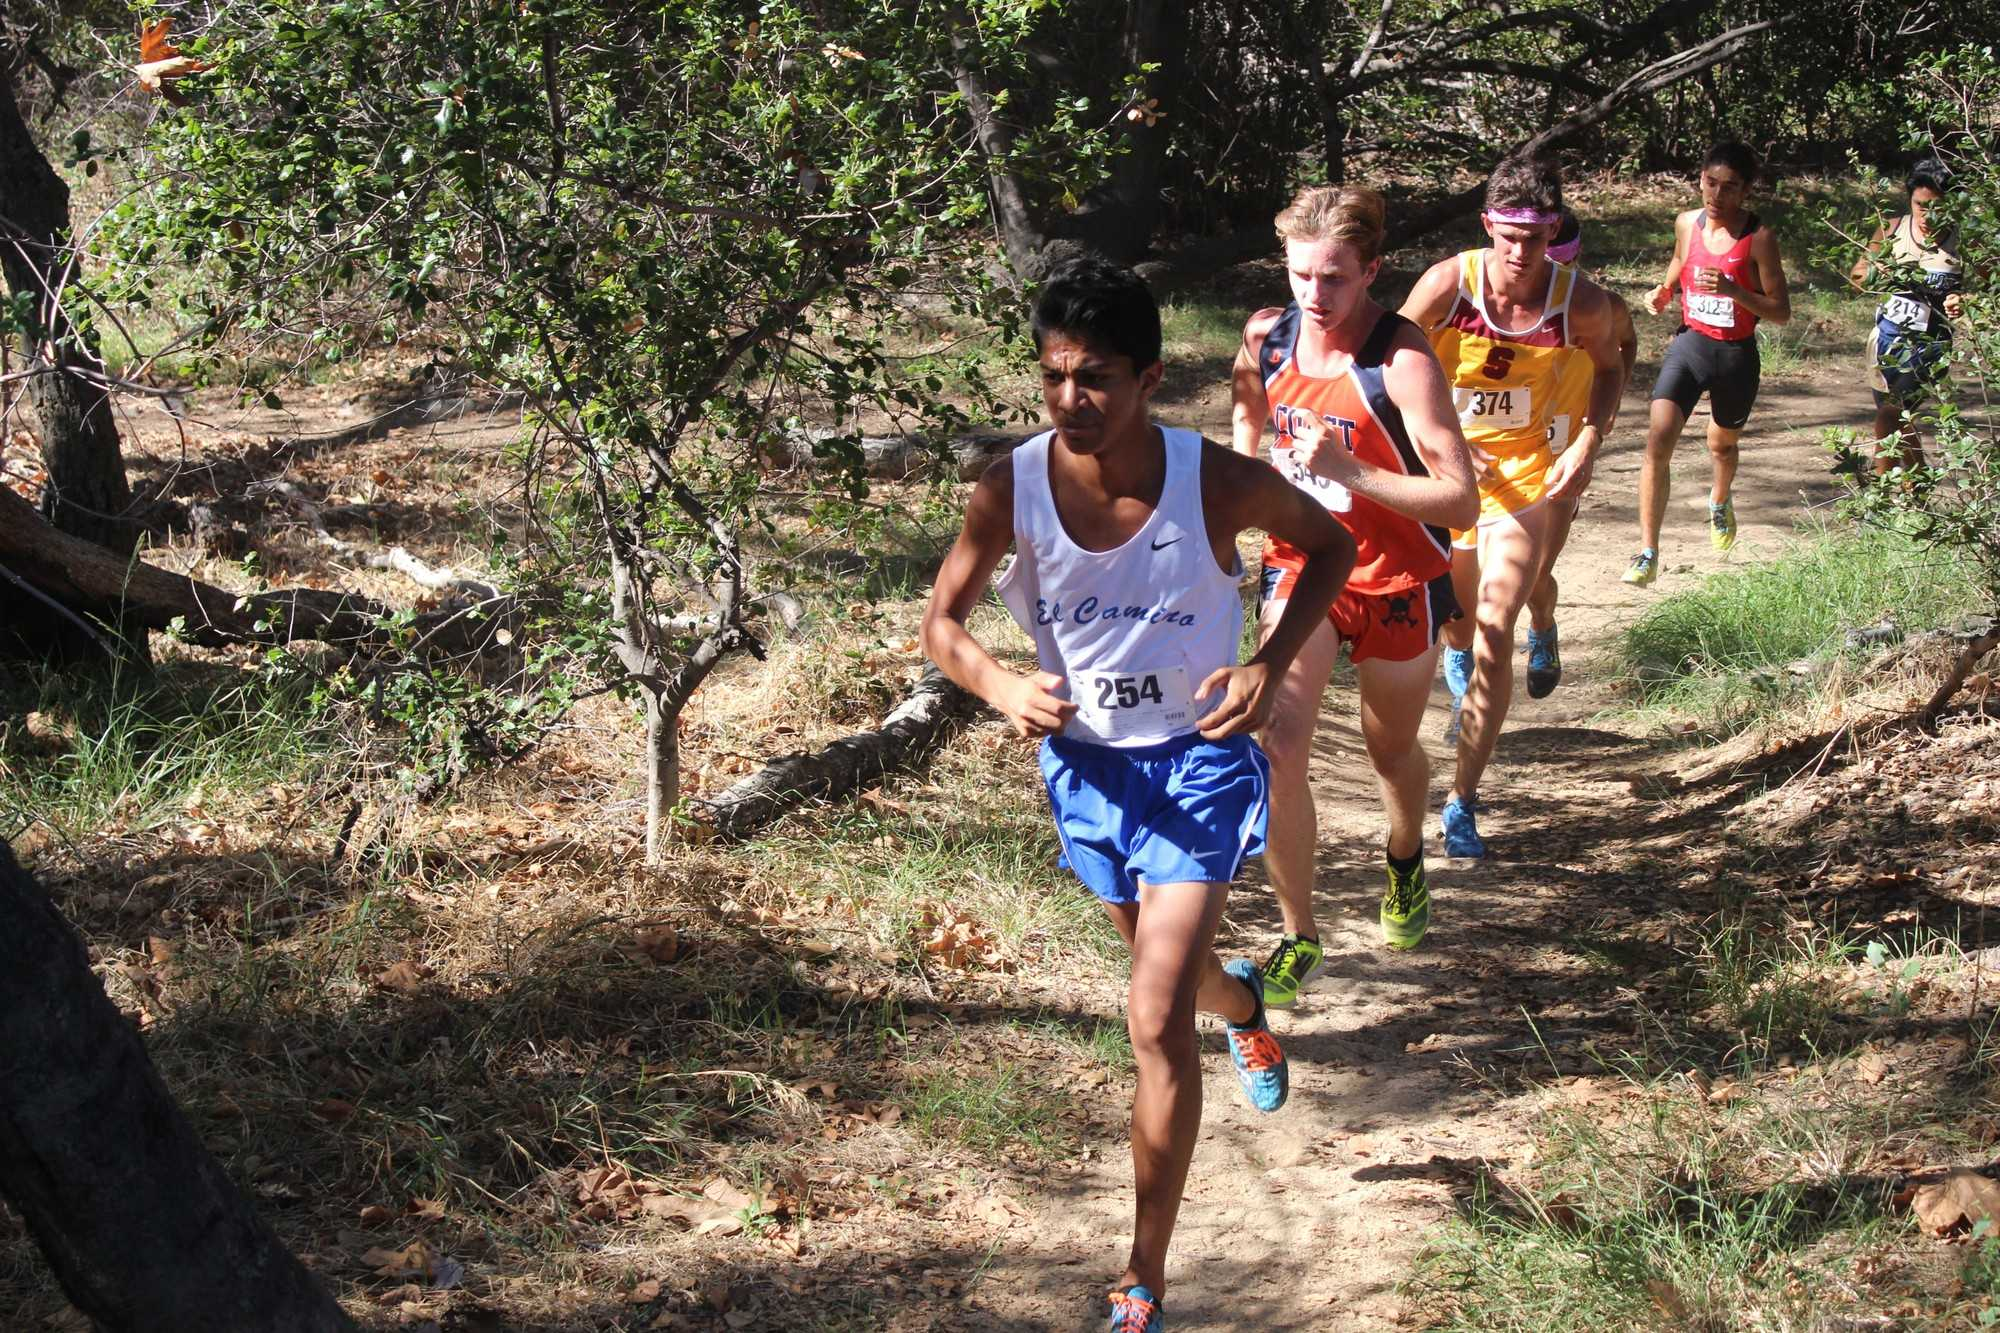 Freshman Solomon Kanehailua leads the middle of the pack for El Camino at the Brubaker Invitational on Friday, placing 28th overall behind freshman teammate, David Hodges, who placed 22nd overall. Photo credit: Roy Garza